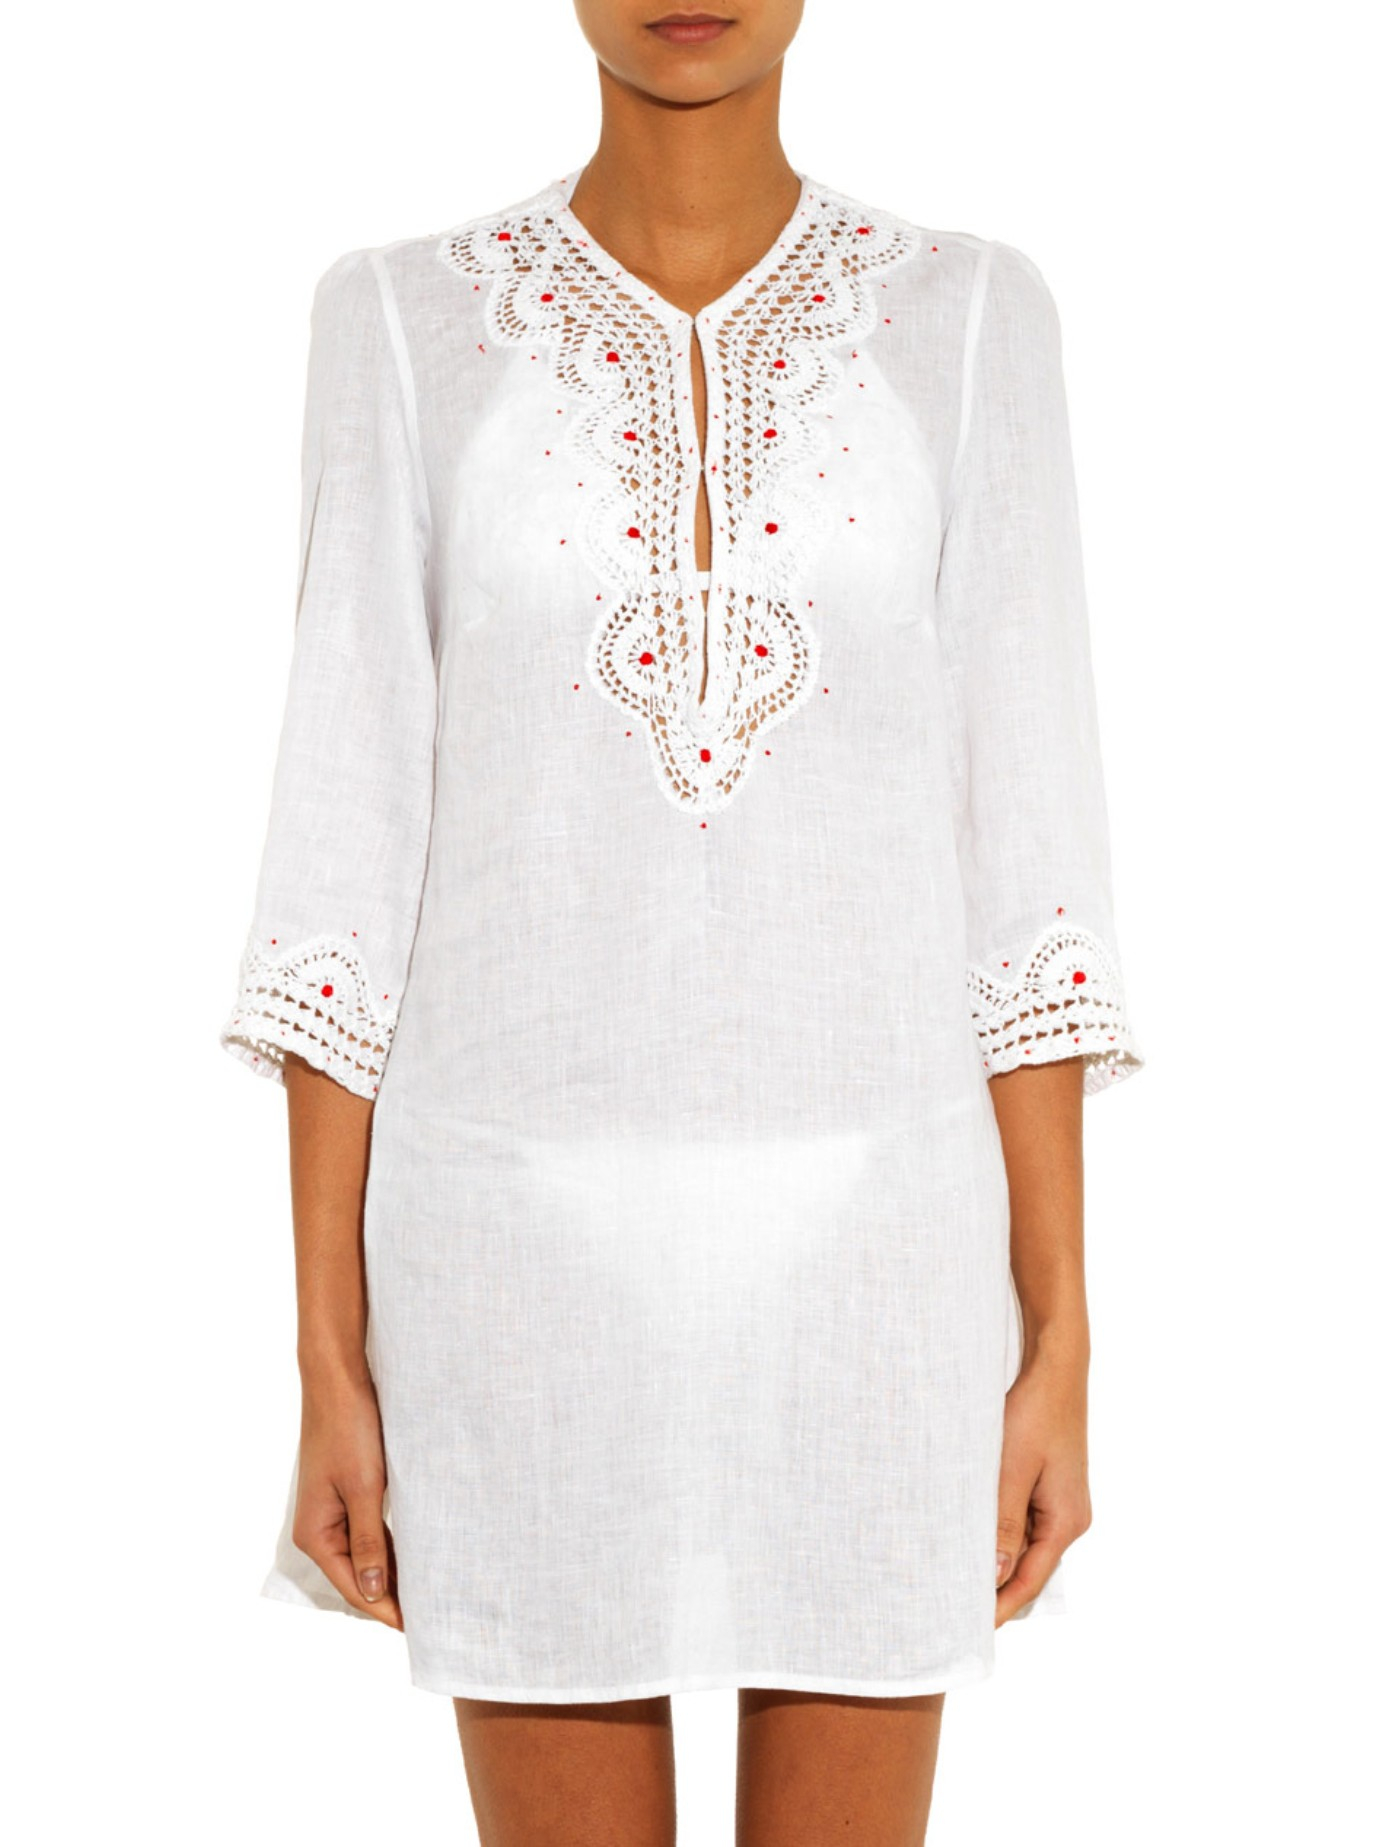 Lyst Easton Pearson Take Away Amea Kuta Embroidered